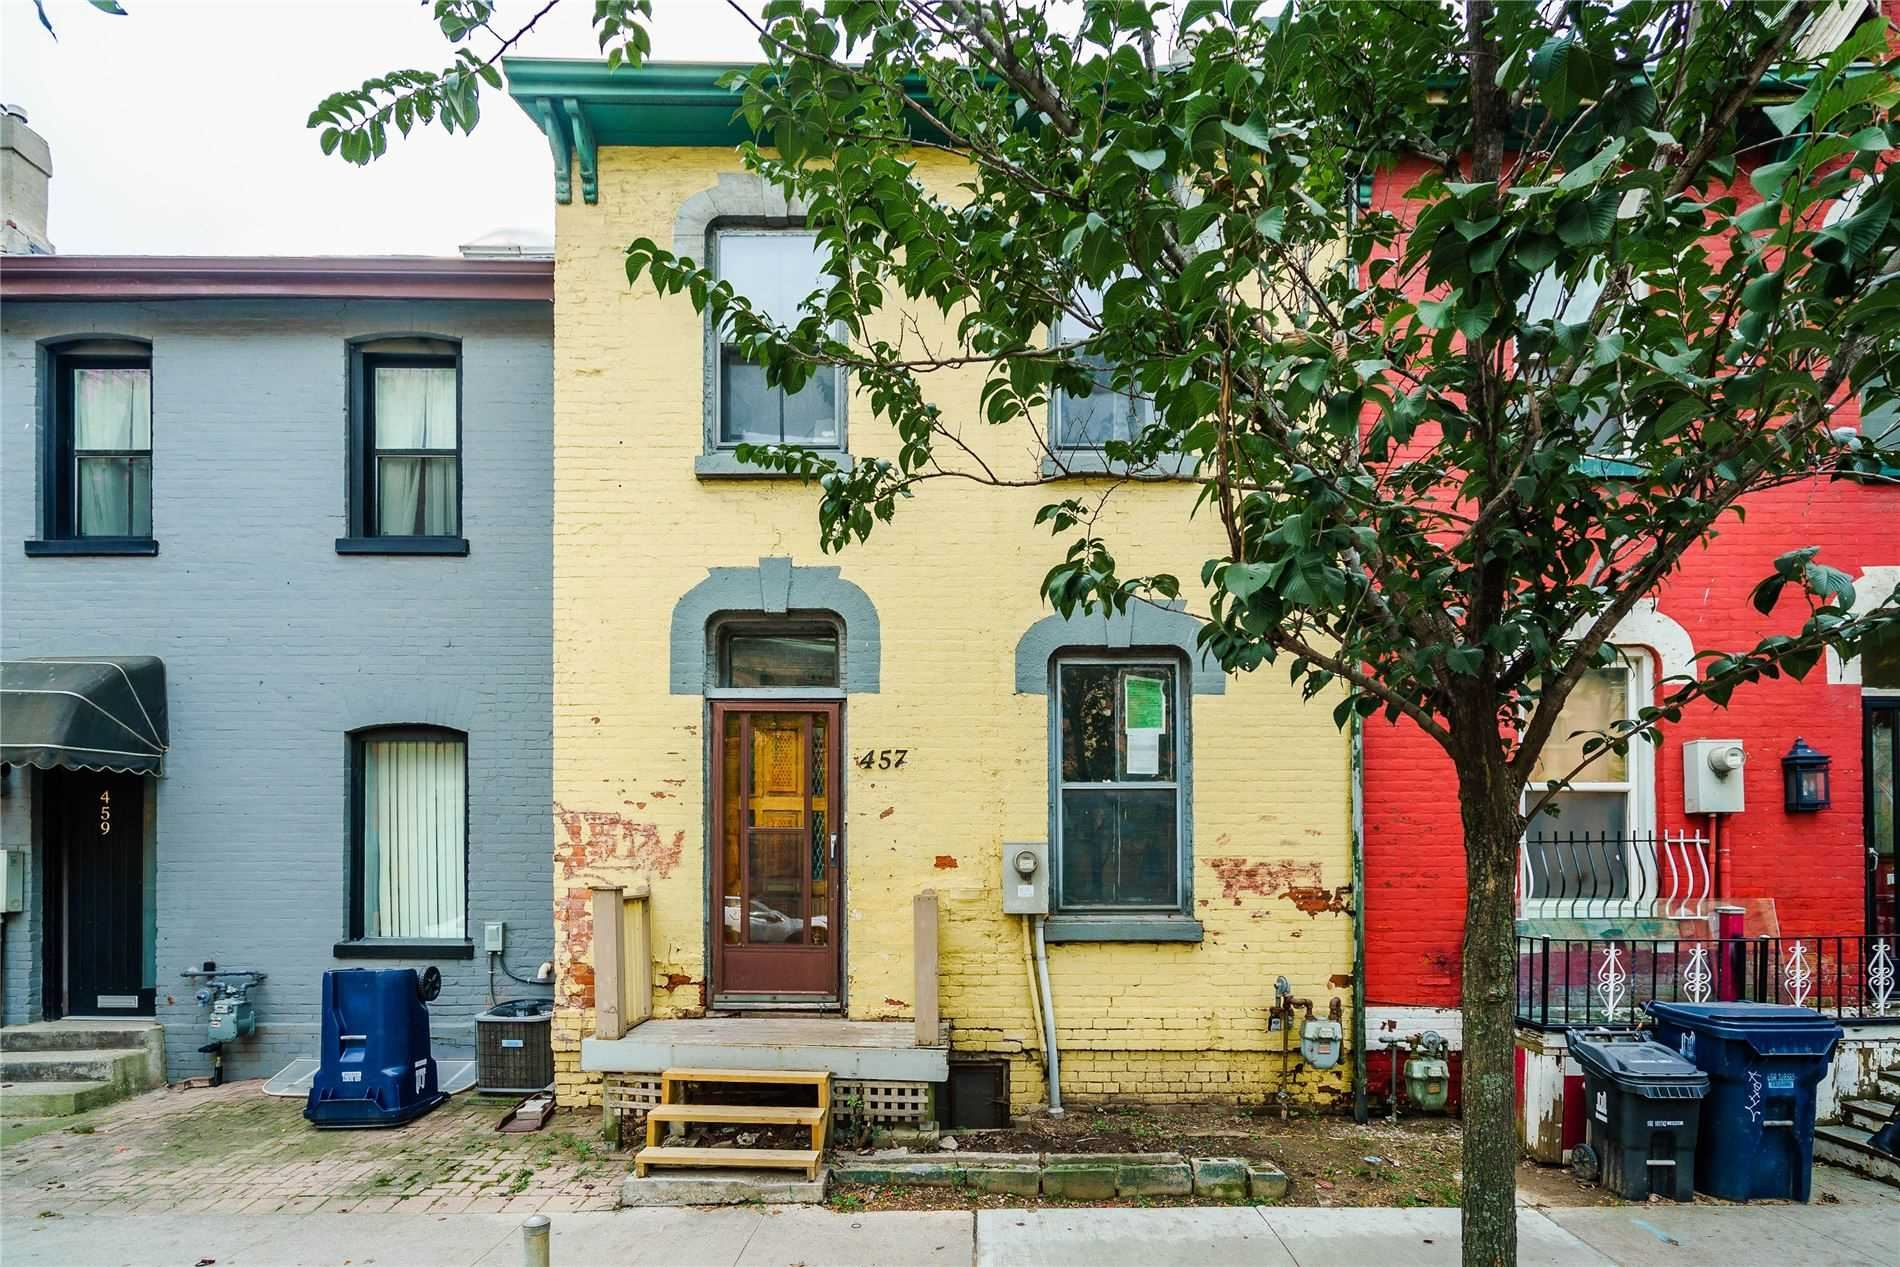 457 Queen St E, Toronto, ON M5A1T6 - MLS#: C5356314